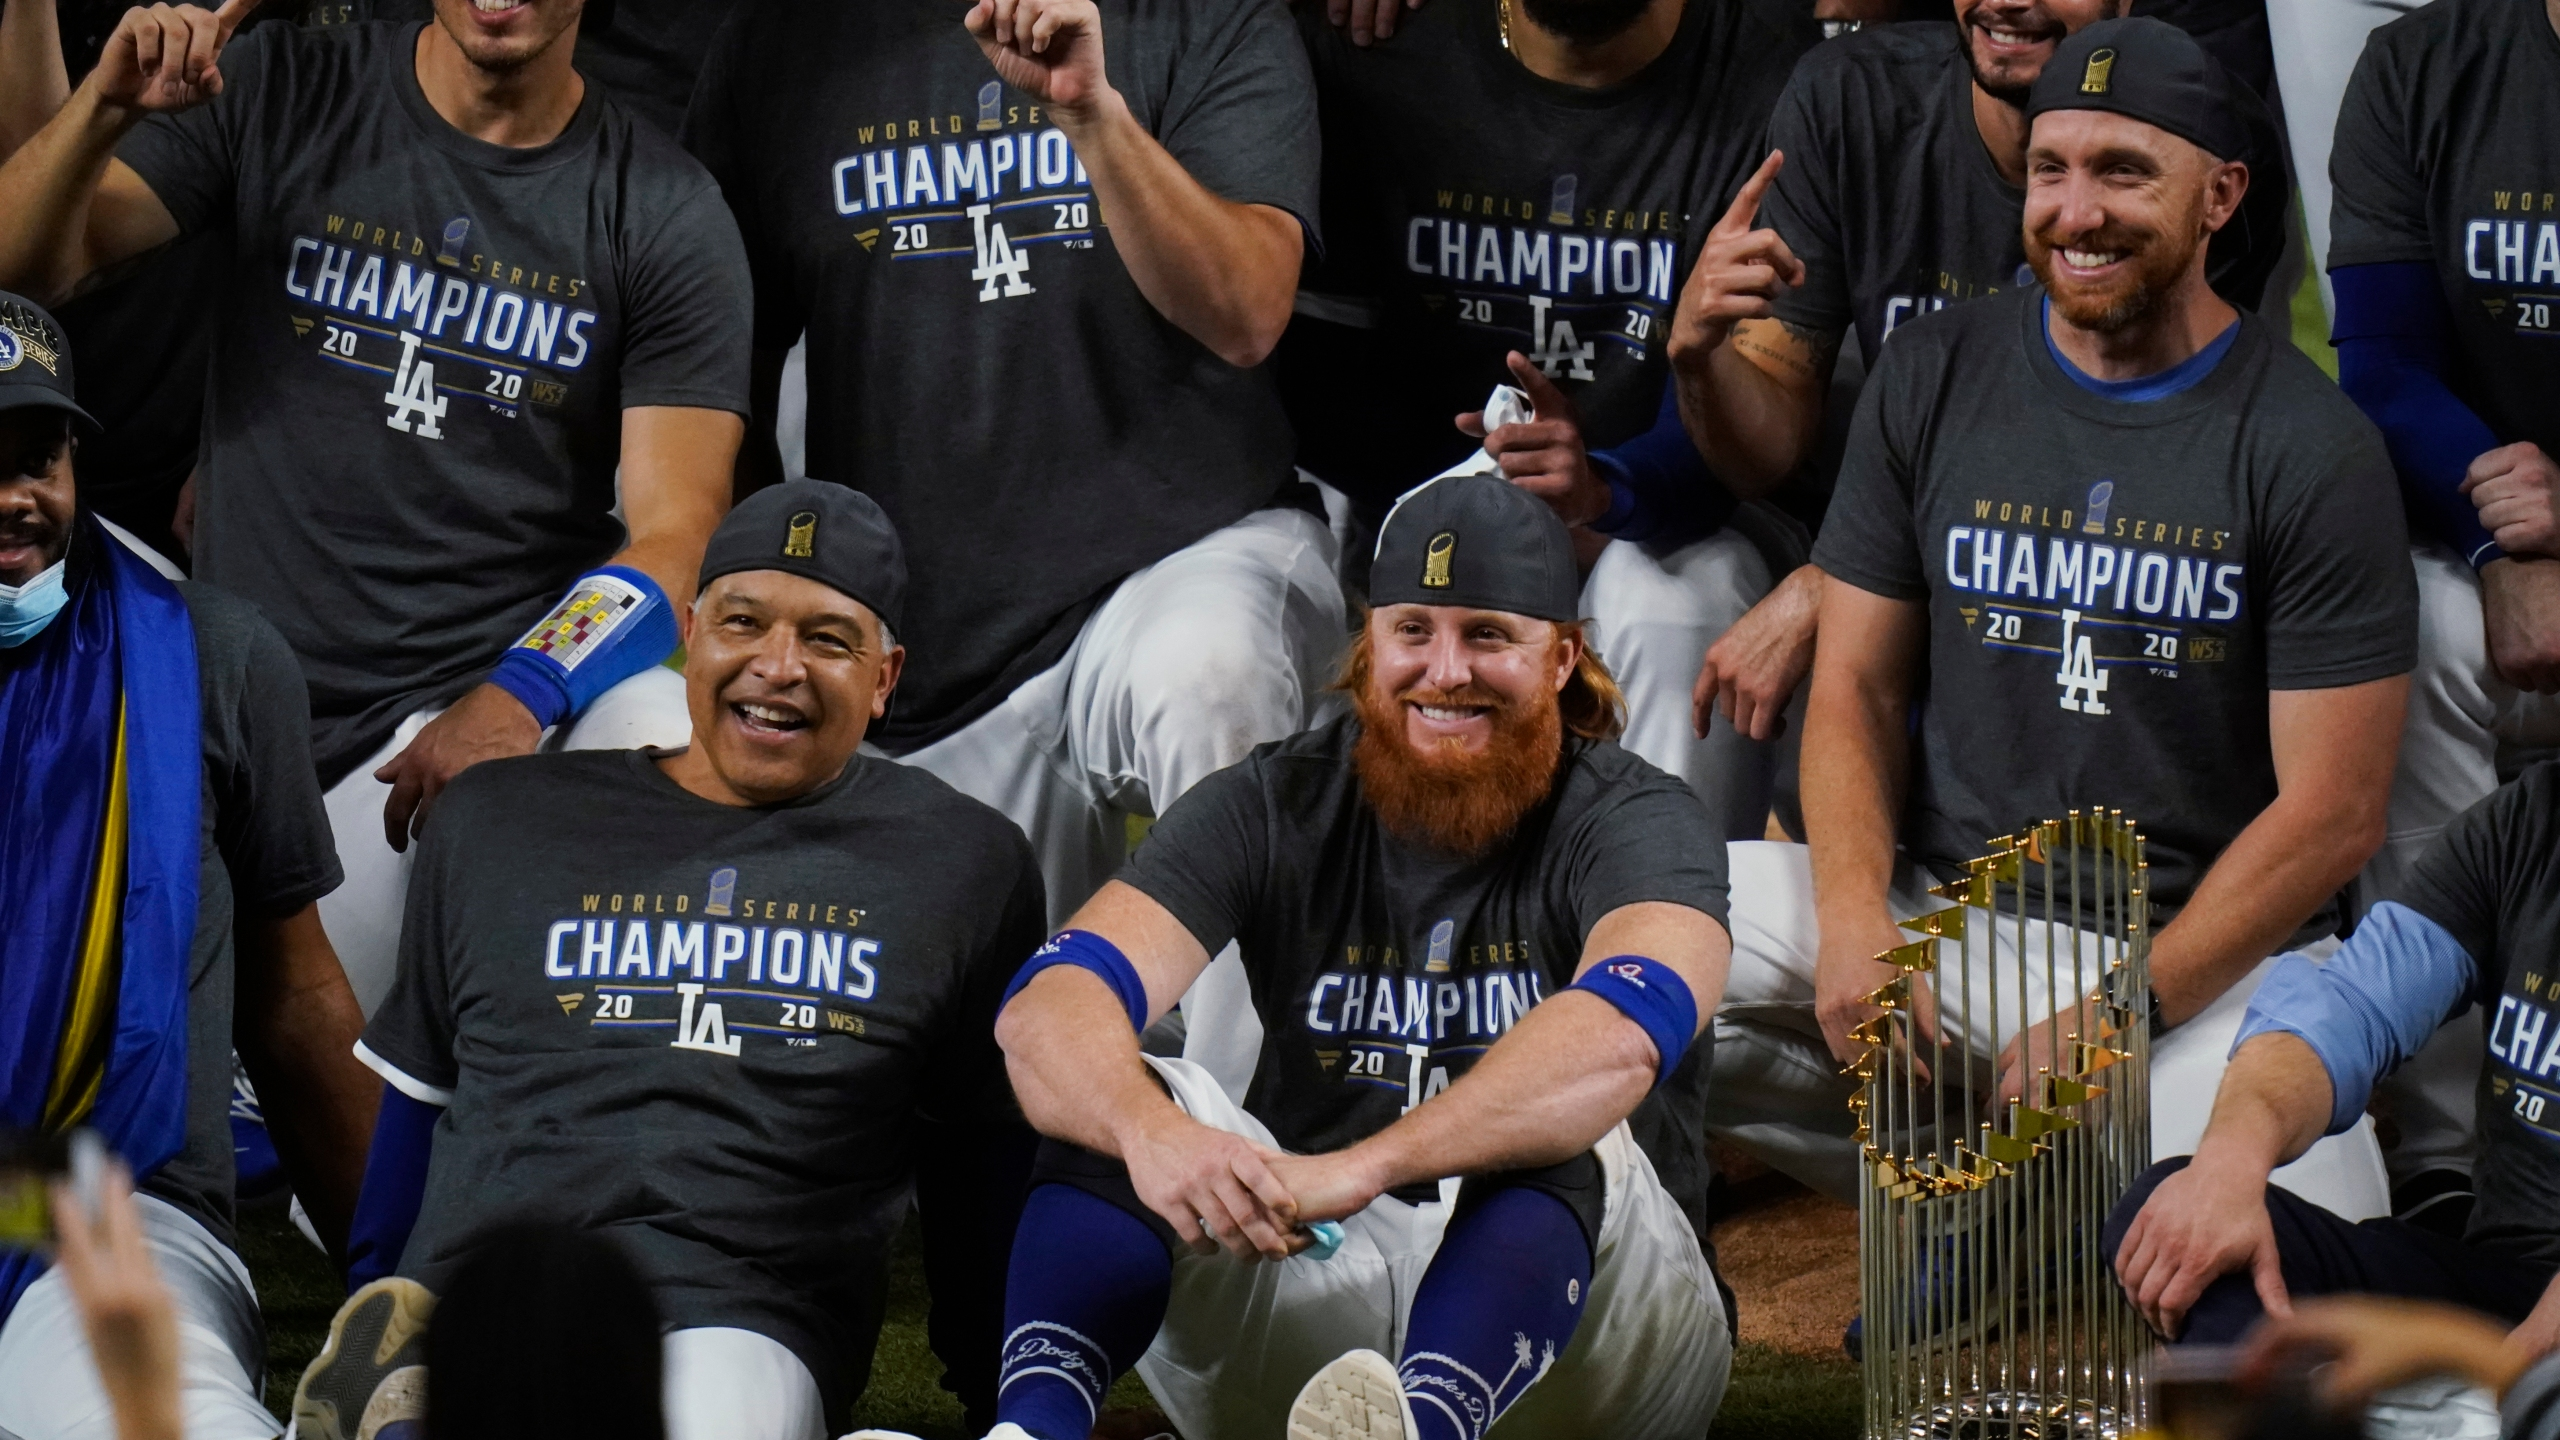 Los Angeles Dodgers manager Dave Roberts and third baseman Justin Turner pose for a group picture after the Dodgers defeated the Tampa Bay Rays 3-1 in Game 6 to win the baseball World Series, Tuesday, Oct. 27, 2020, in Arlington, Texas. The picture was taken after Turner was pulled from the game due to a positive coronavirus test. (AP Photo/Eric Gay)